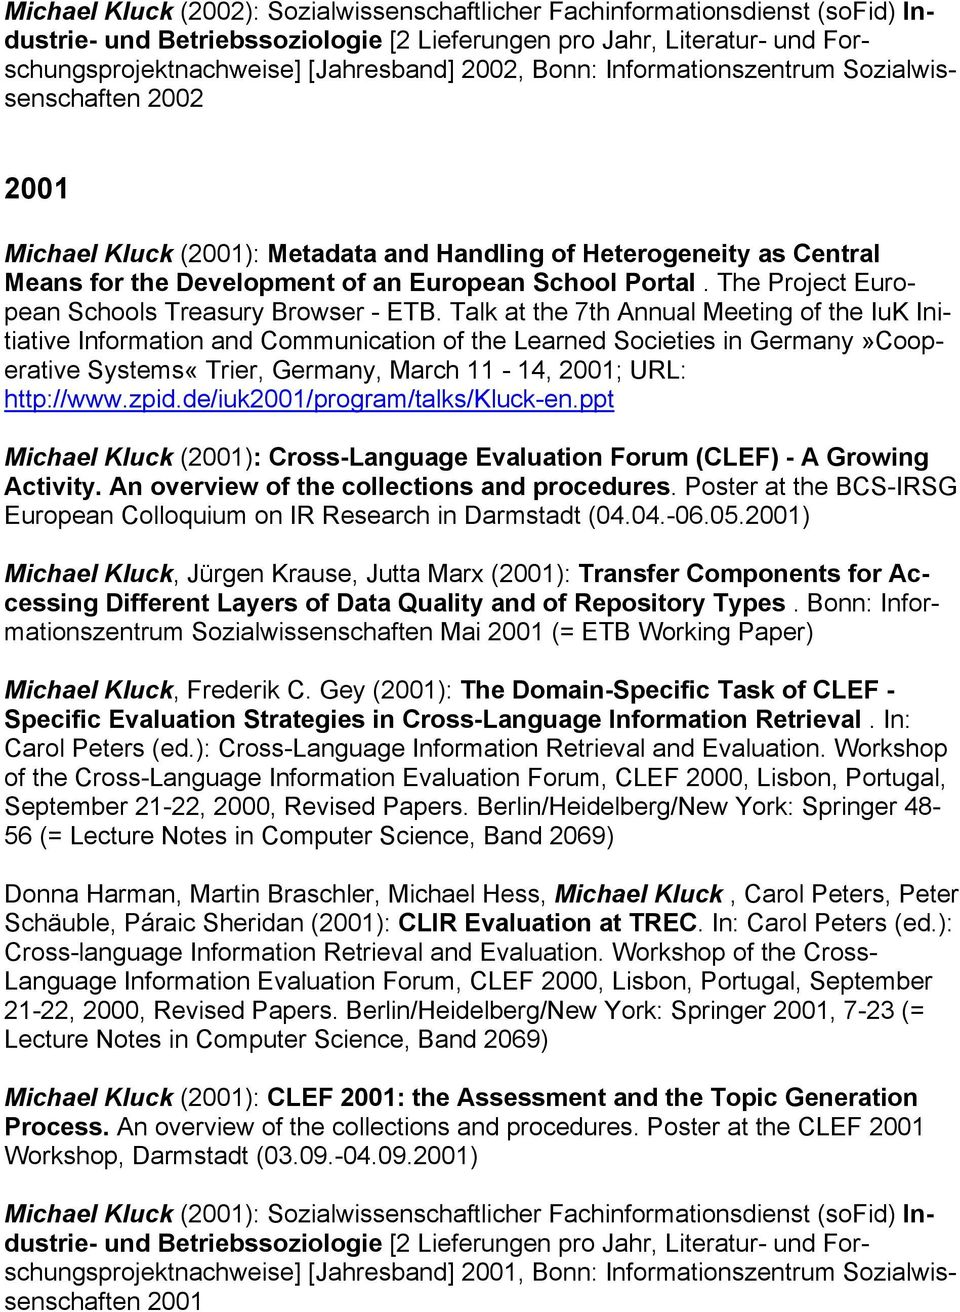 Talk at the 7th Annual Meeting of the IuK Initiative Information and Communication of the Learned Societies in Germany»Cooperative Systems«Trier, Germany, March 11-14, 2001; URL: http://www.zpid.